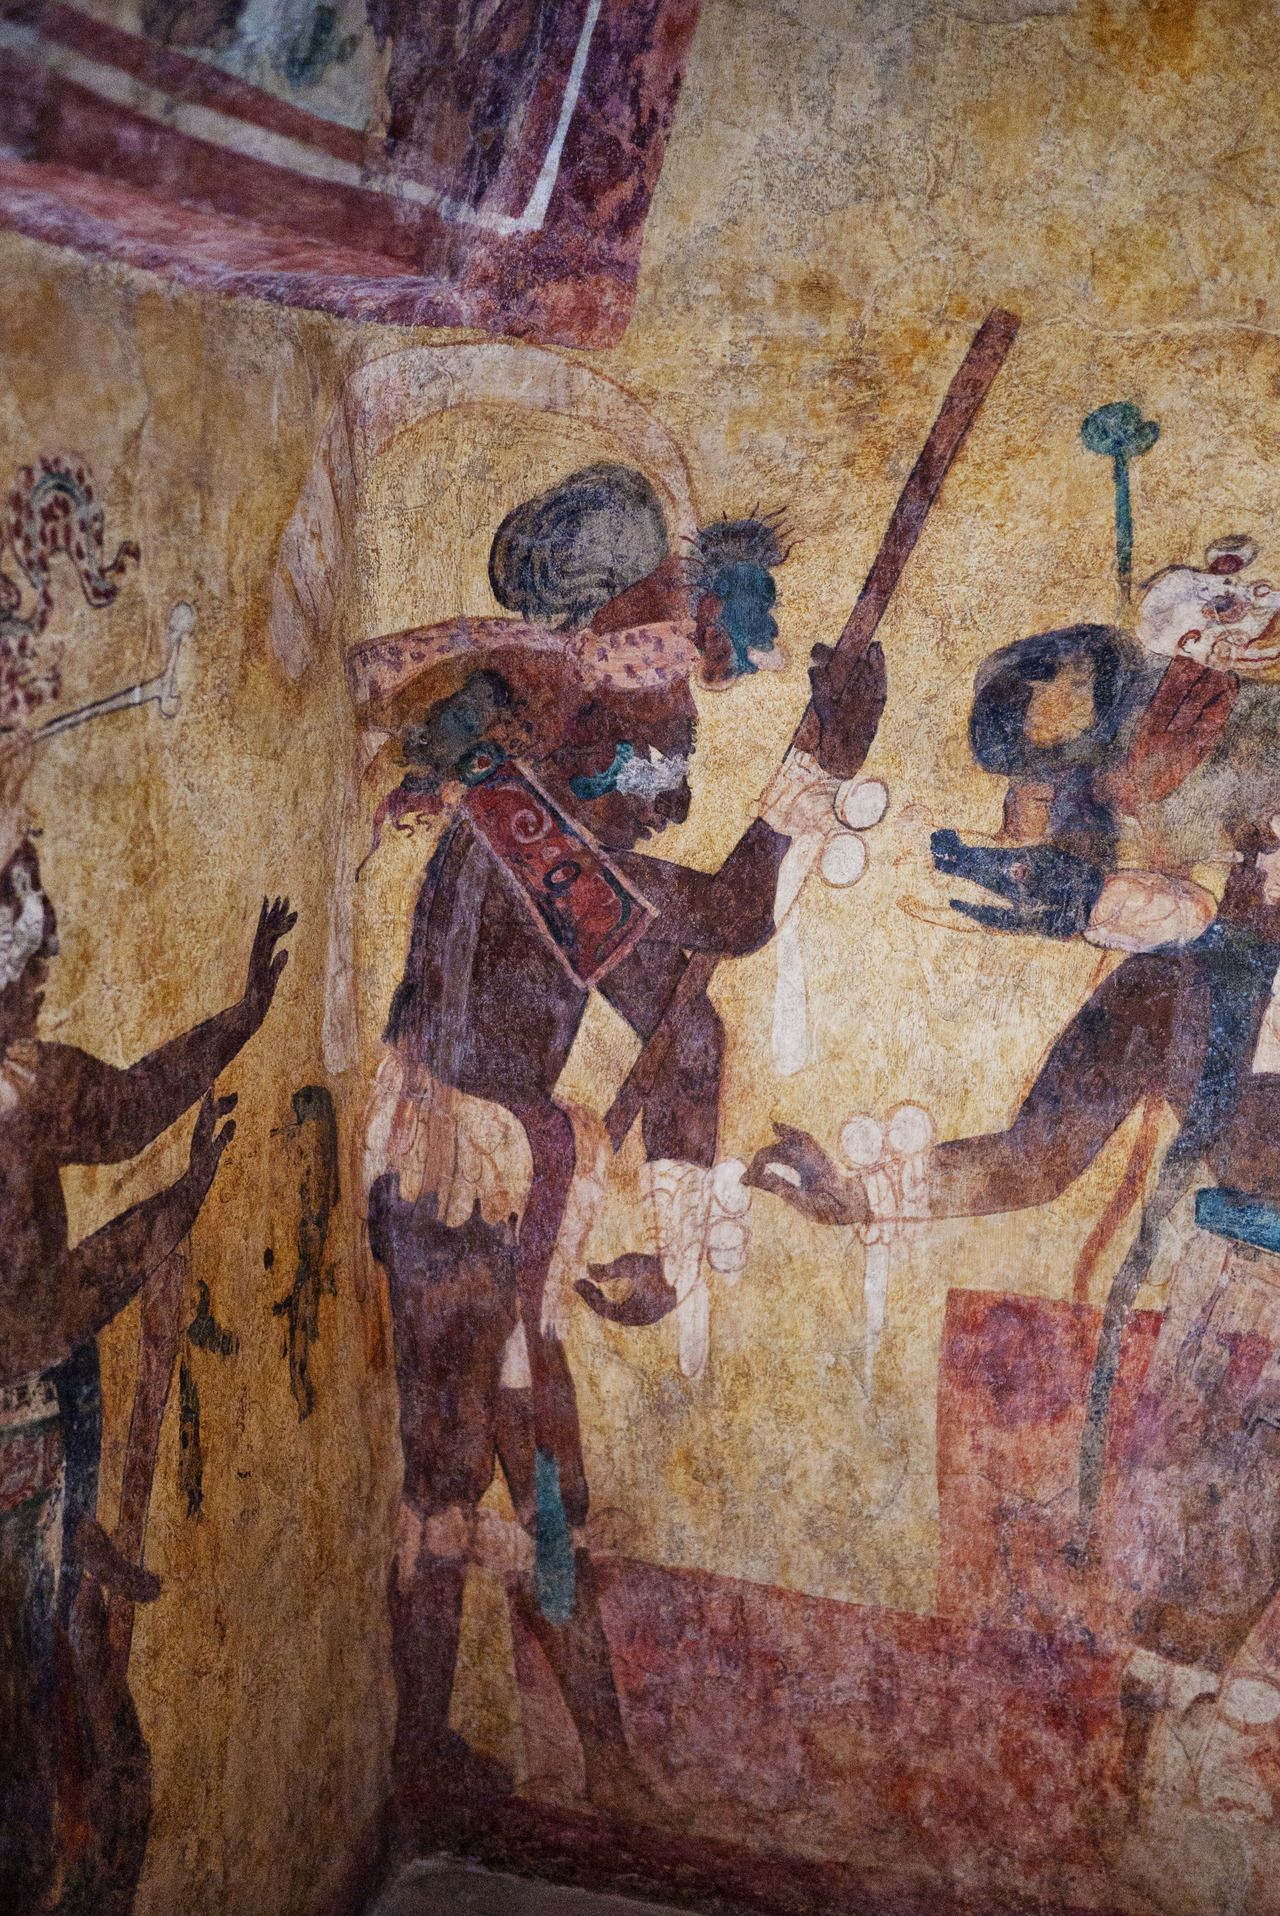 Ancient Mayan Wall Frescos From A Room In The Maya Archaeological